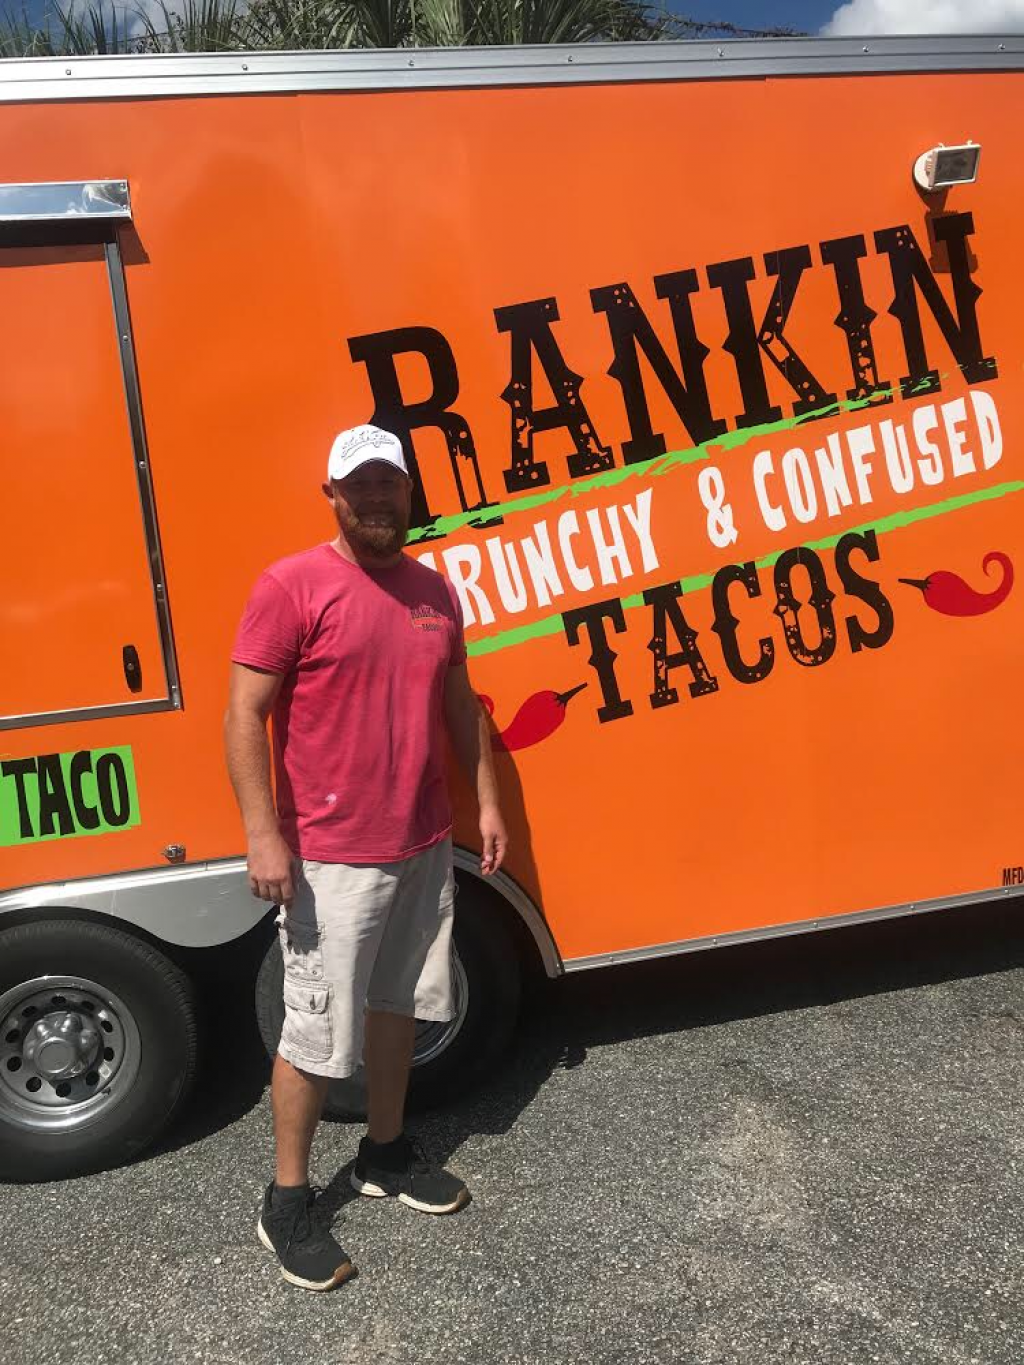 Taco food truck finds a niche